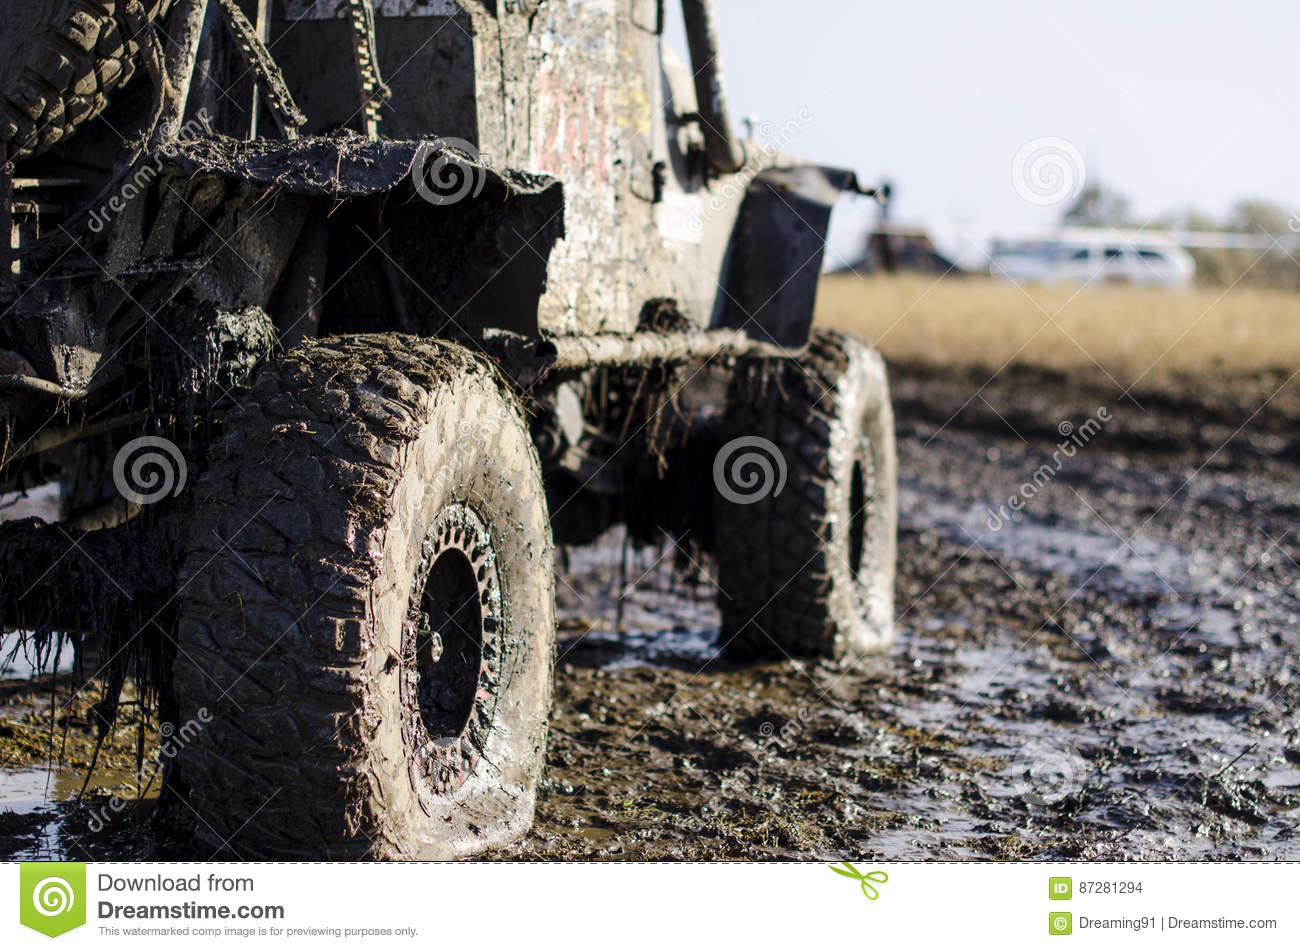 Off-road car in a puddle making mud splashes.